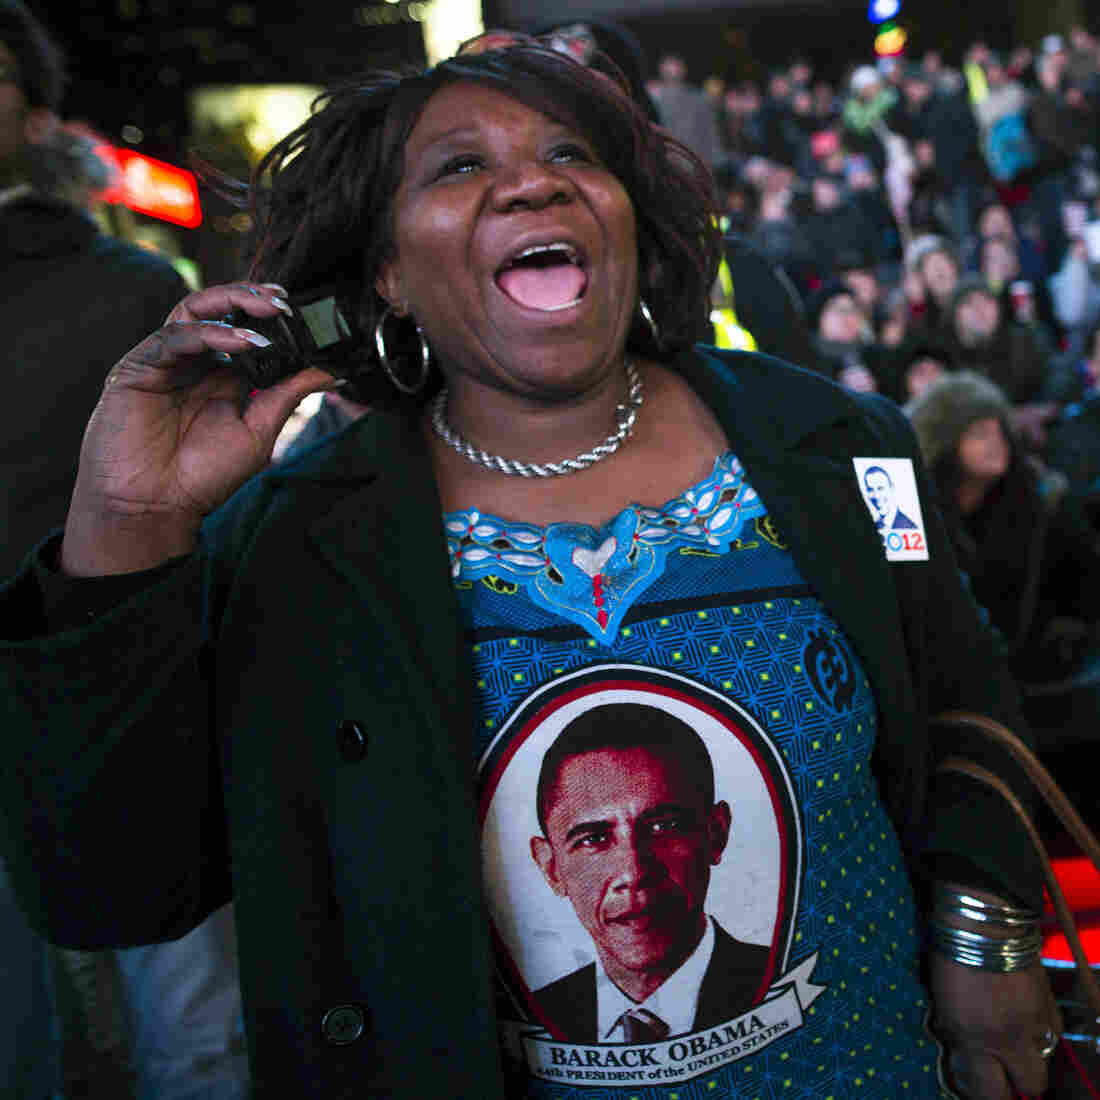 Obama's Win Powered By Organization, If Not Ideas